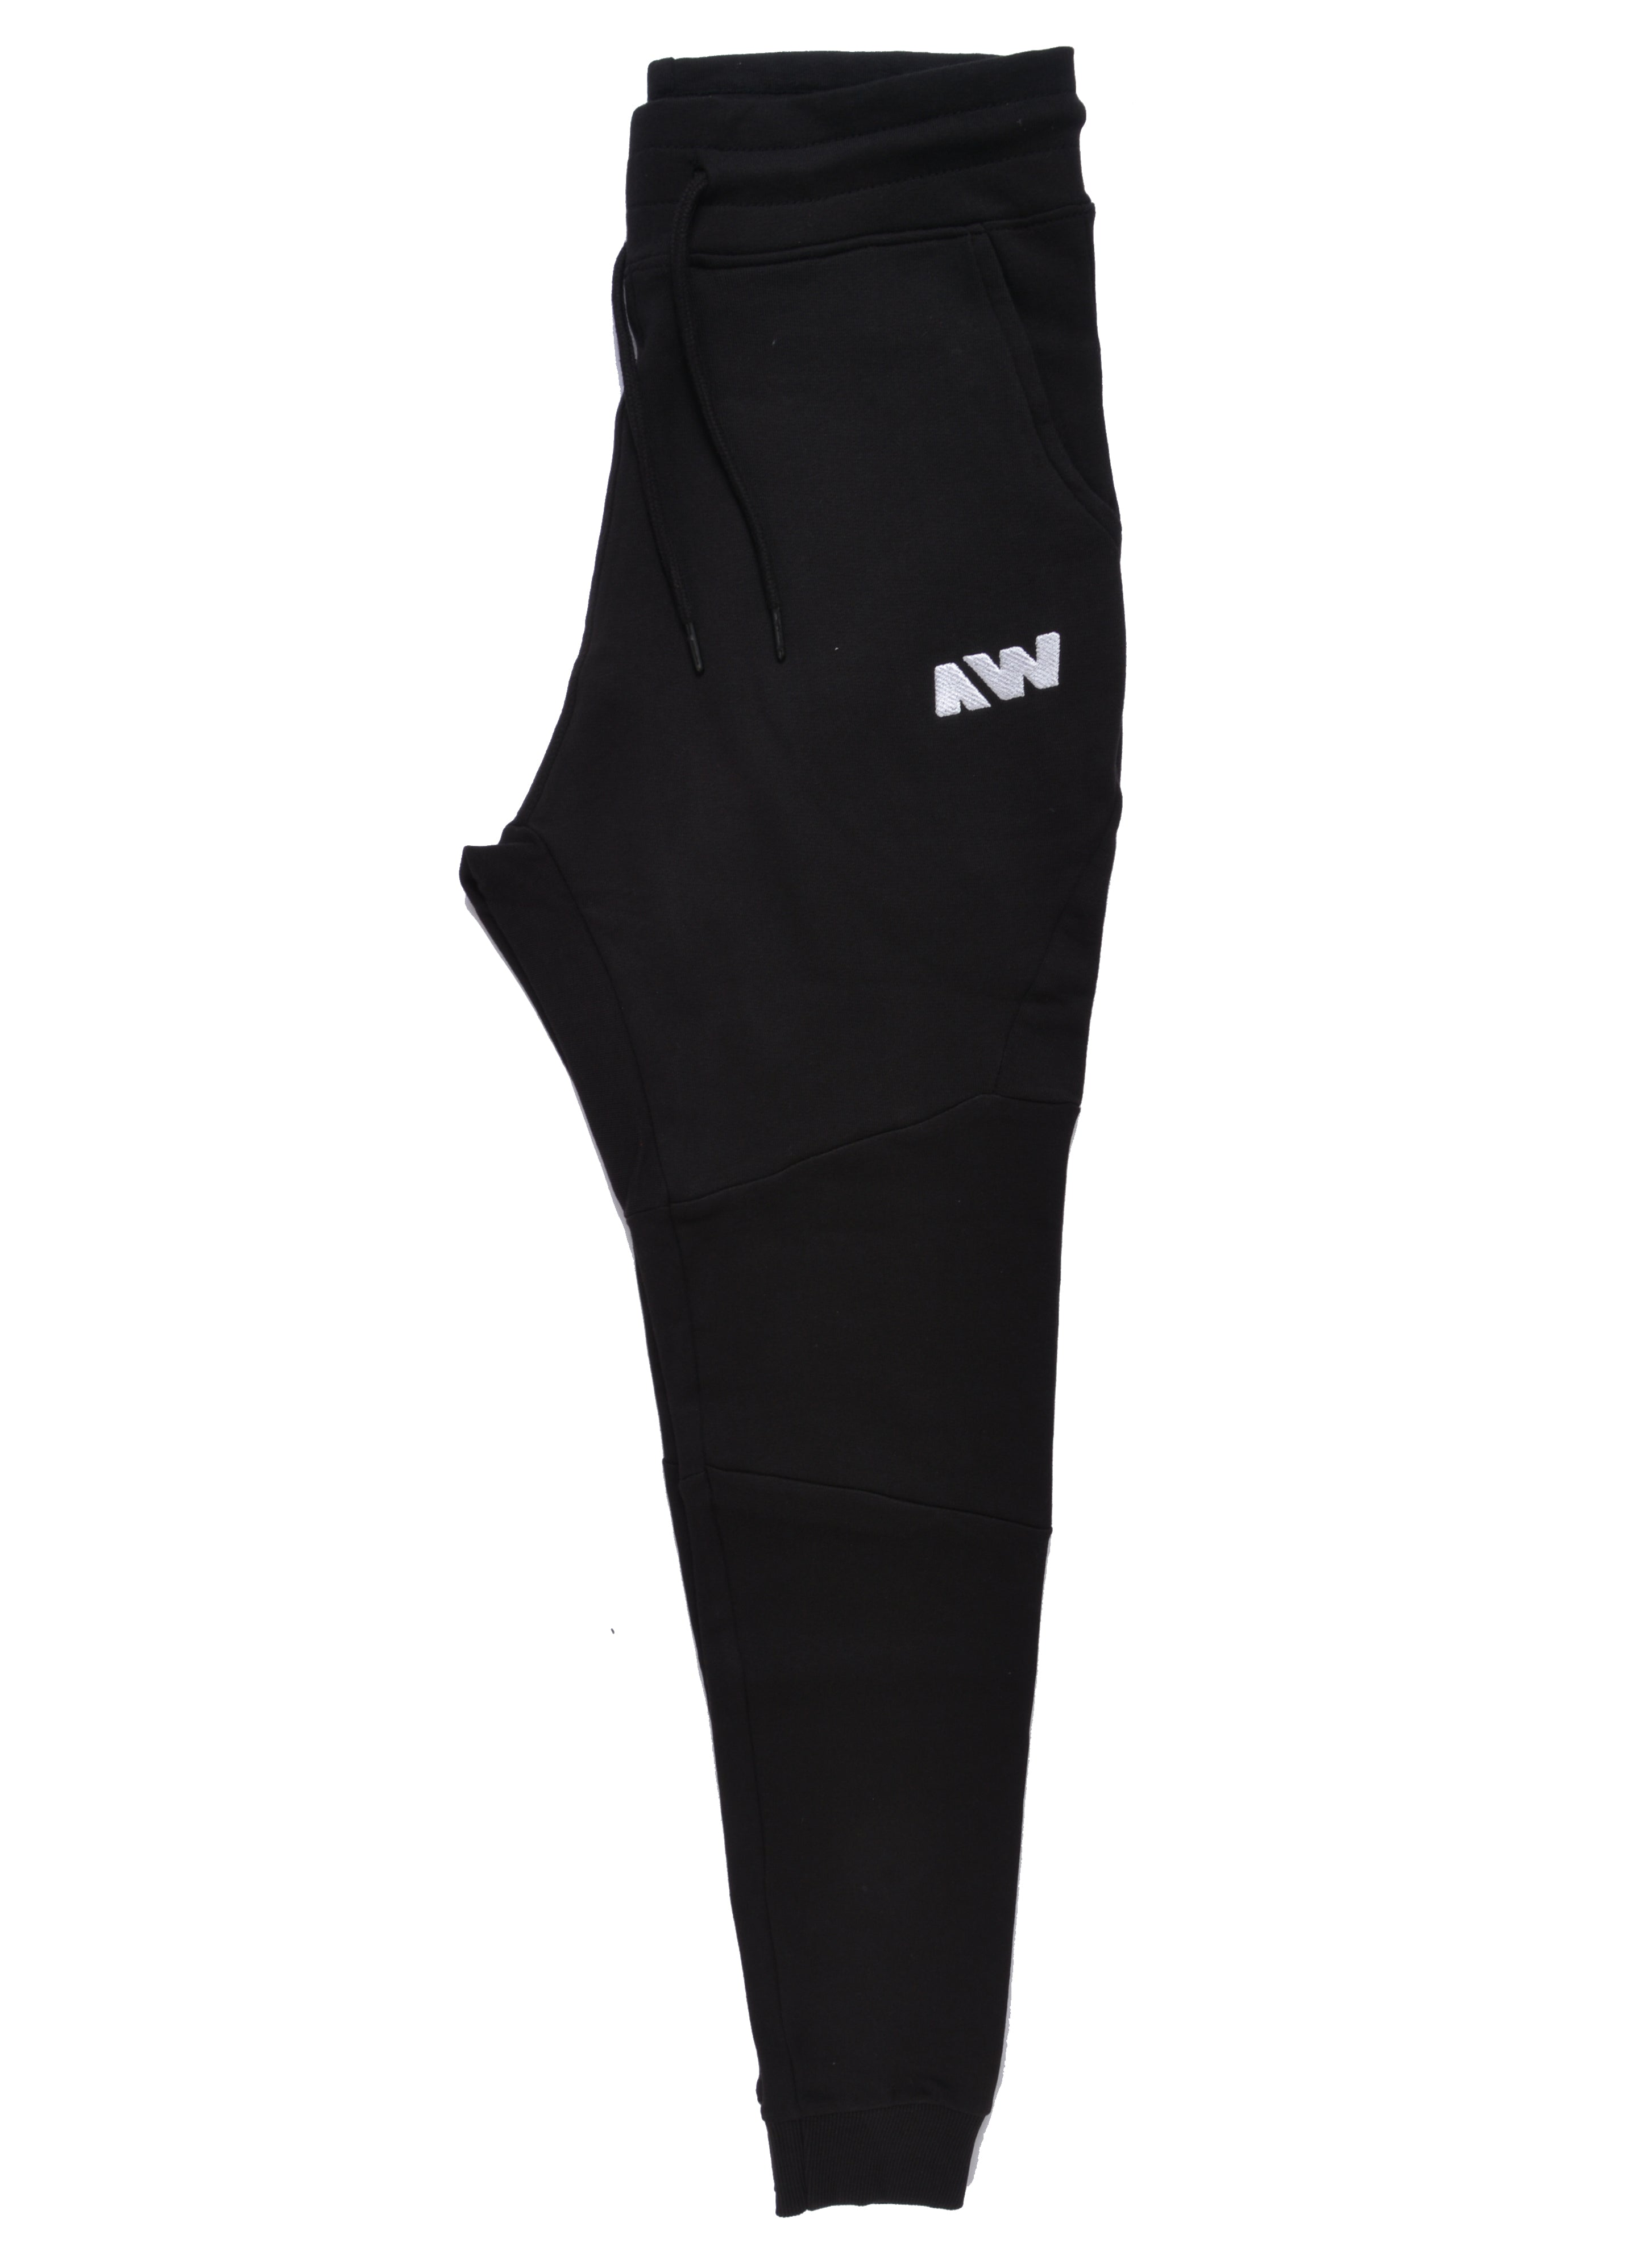 Wassabi Cotton Tech Sweatpants - Black w/ White AW